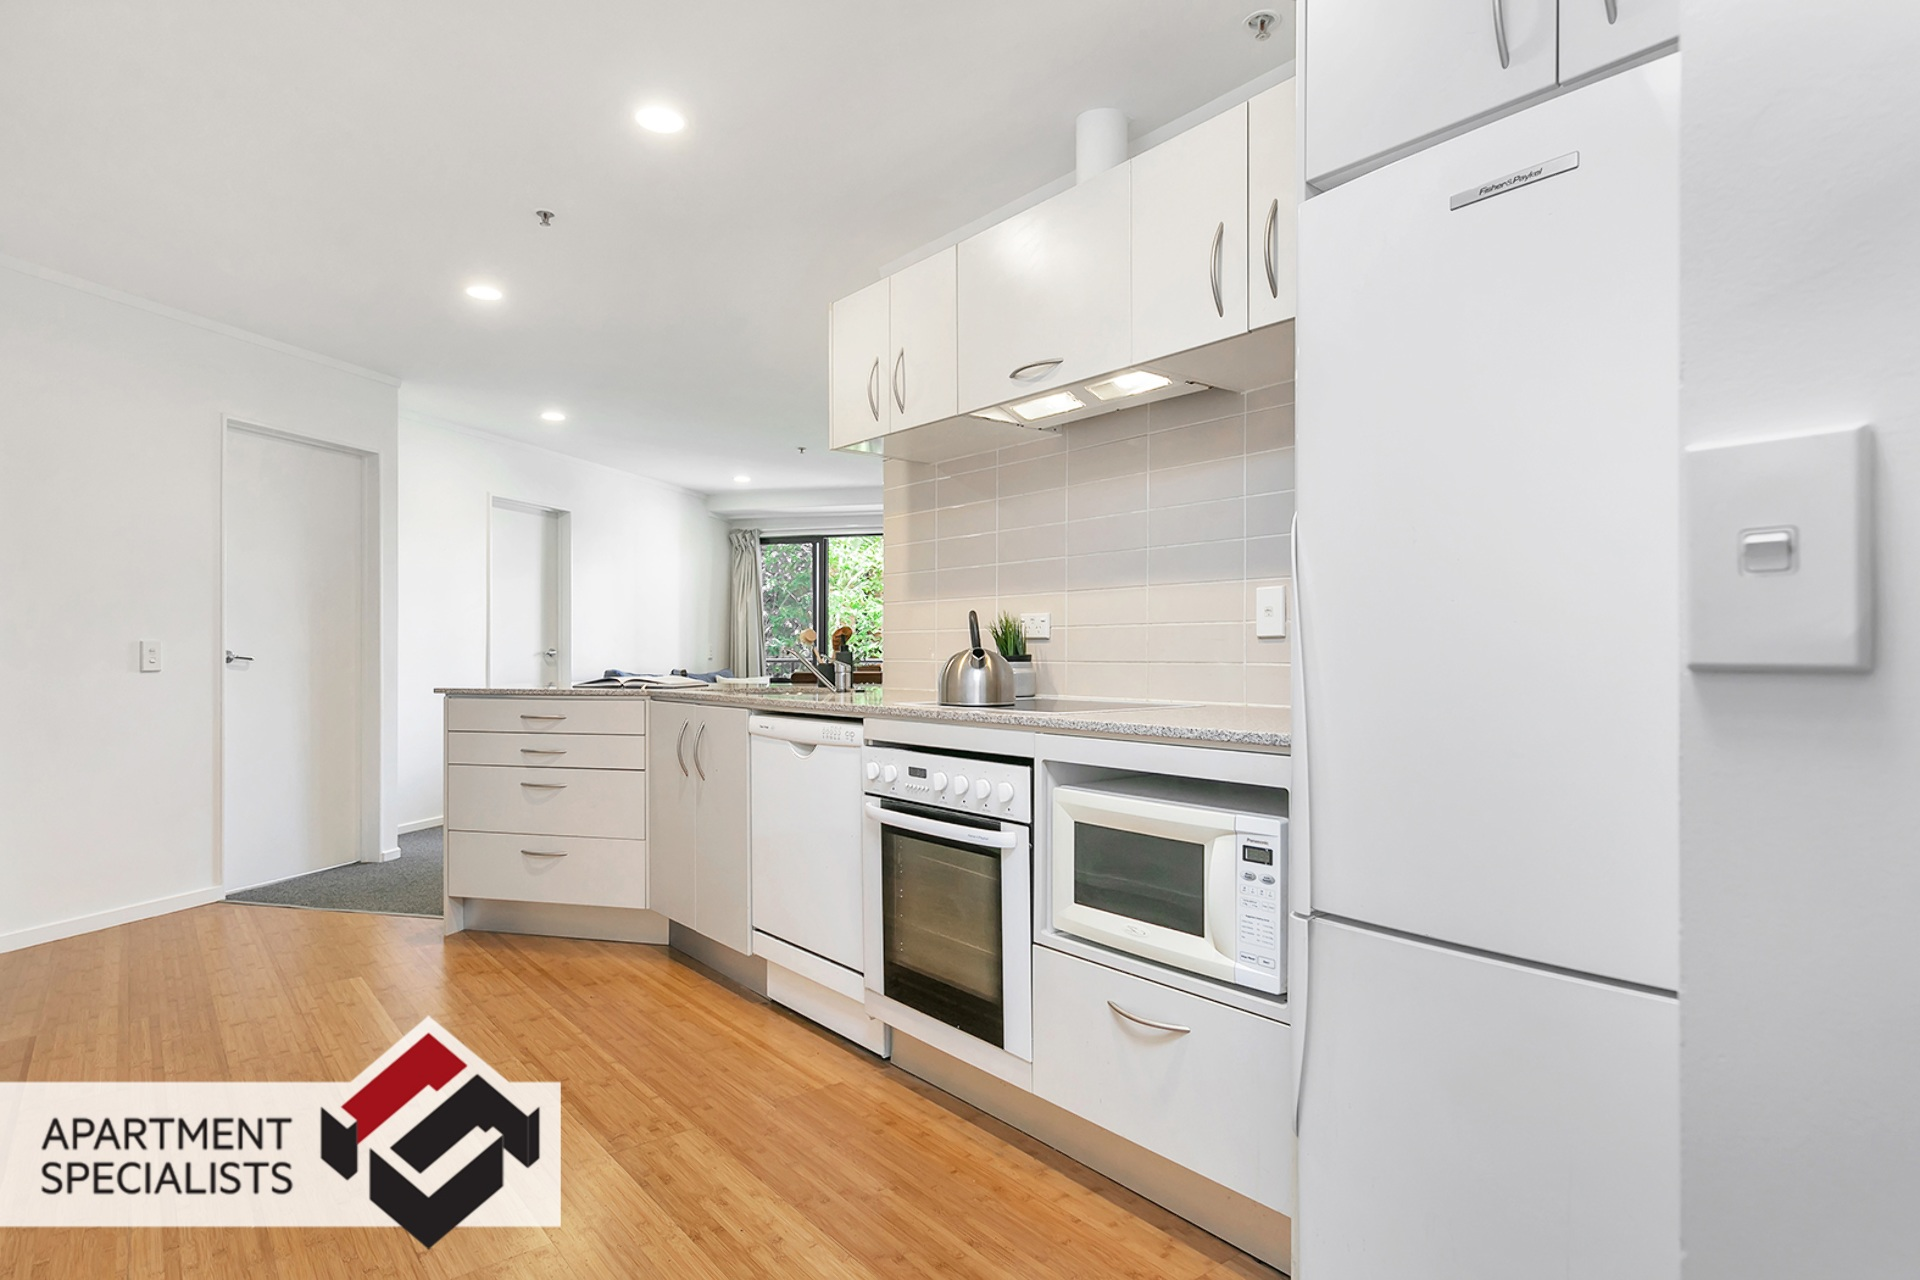 7 | 6 Whitaker Place, City Centre | Apartment Specialists